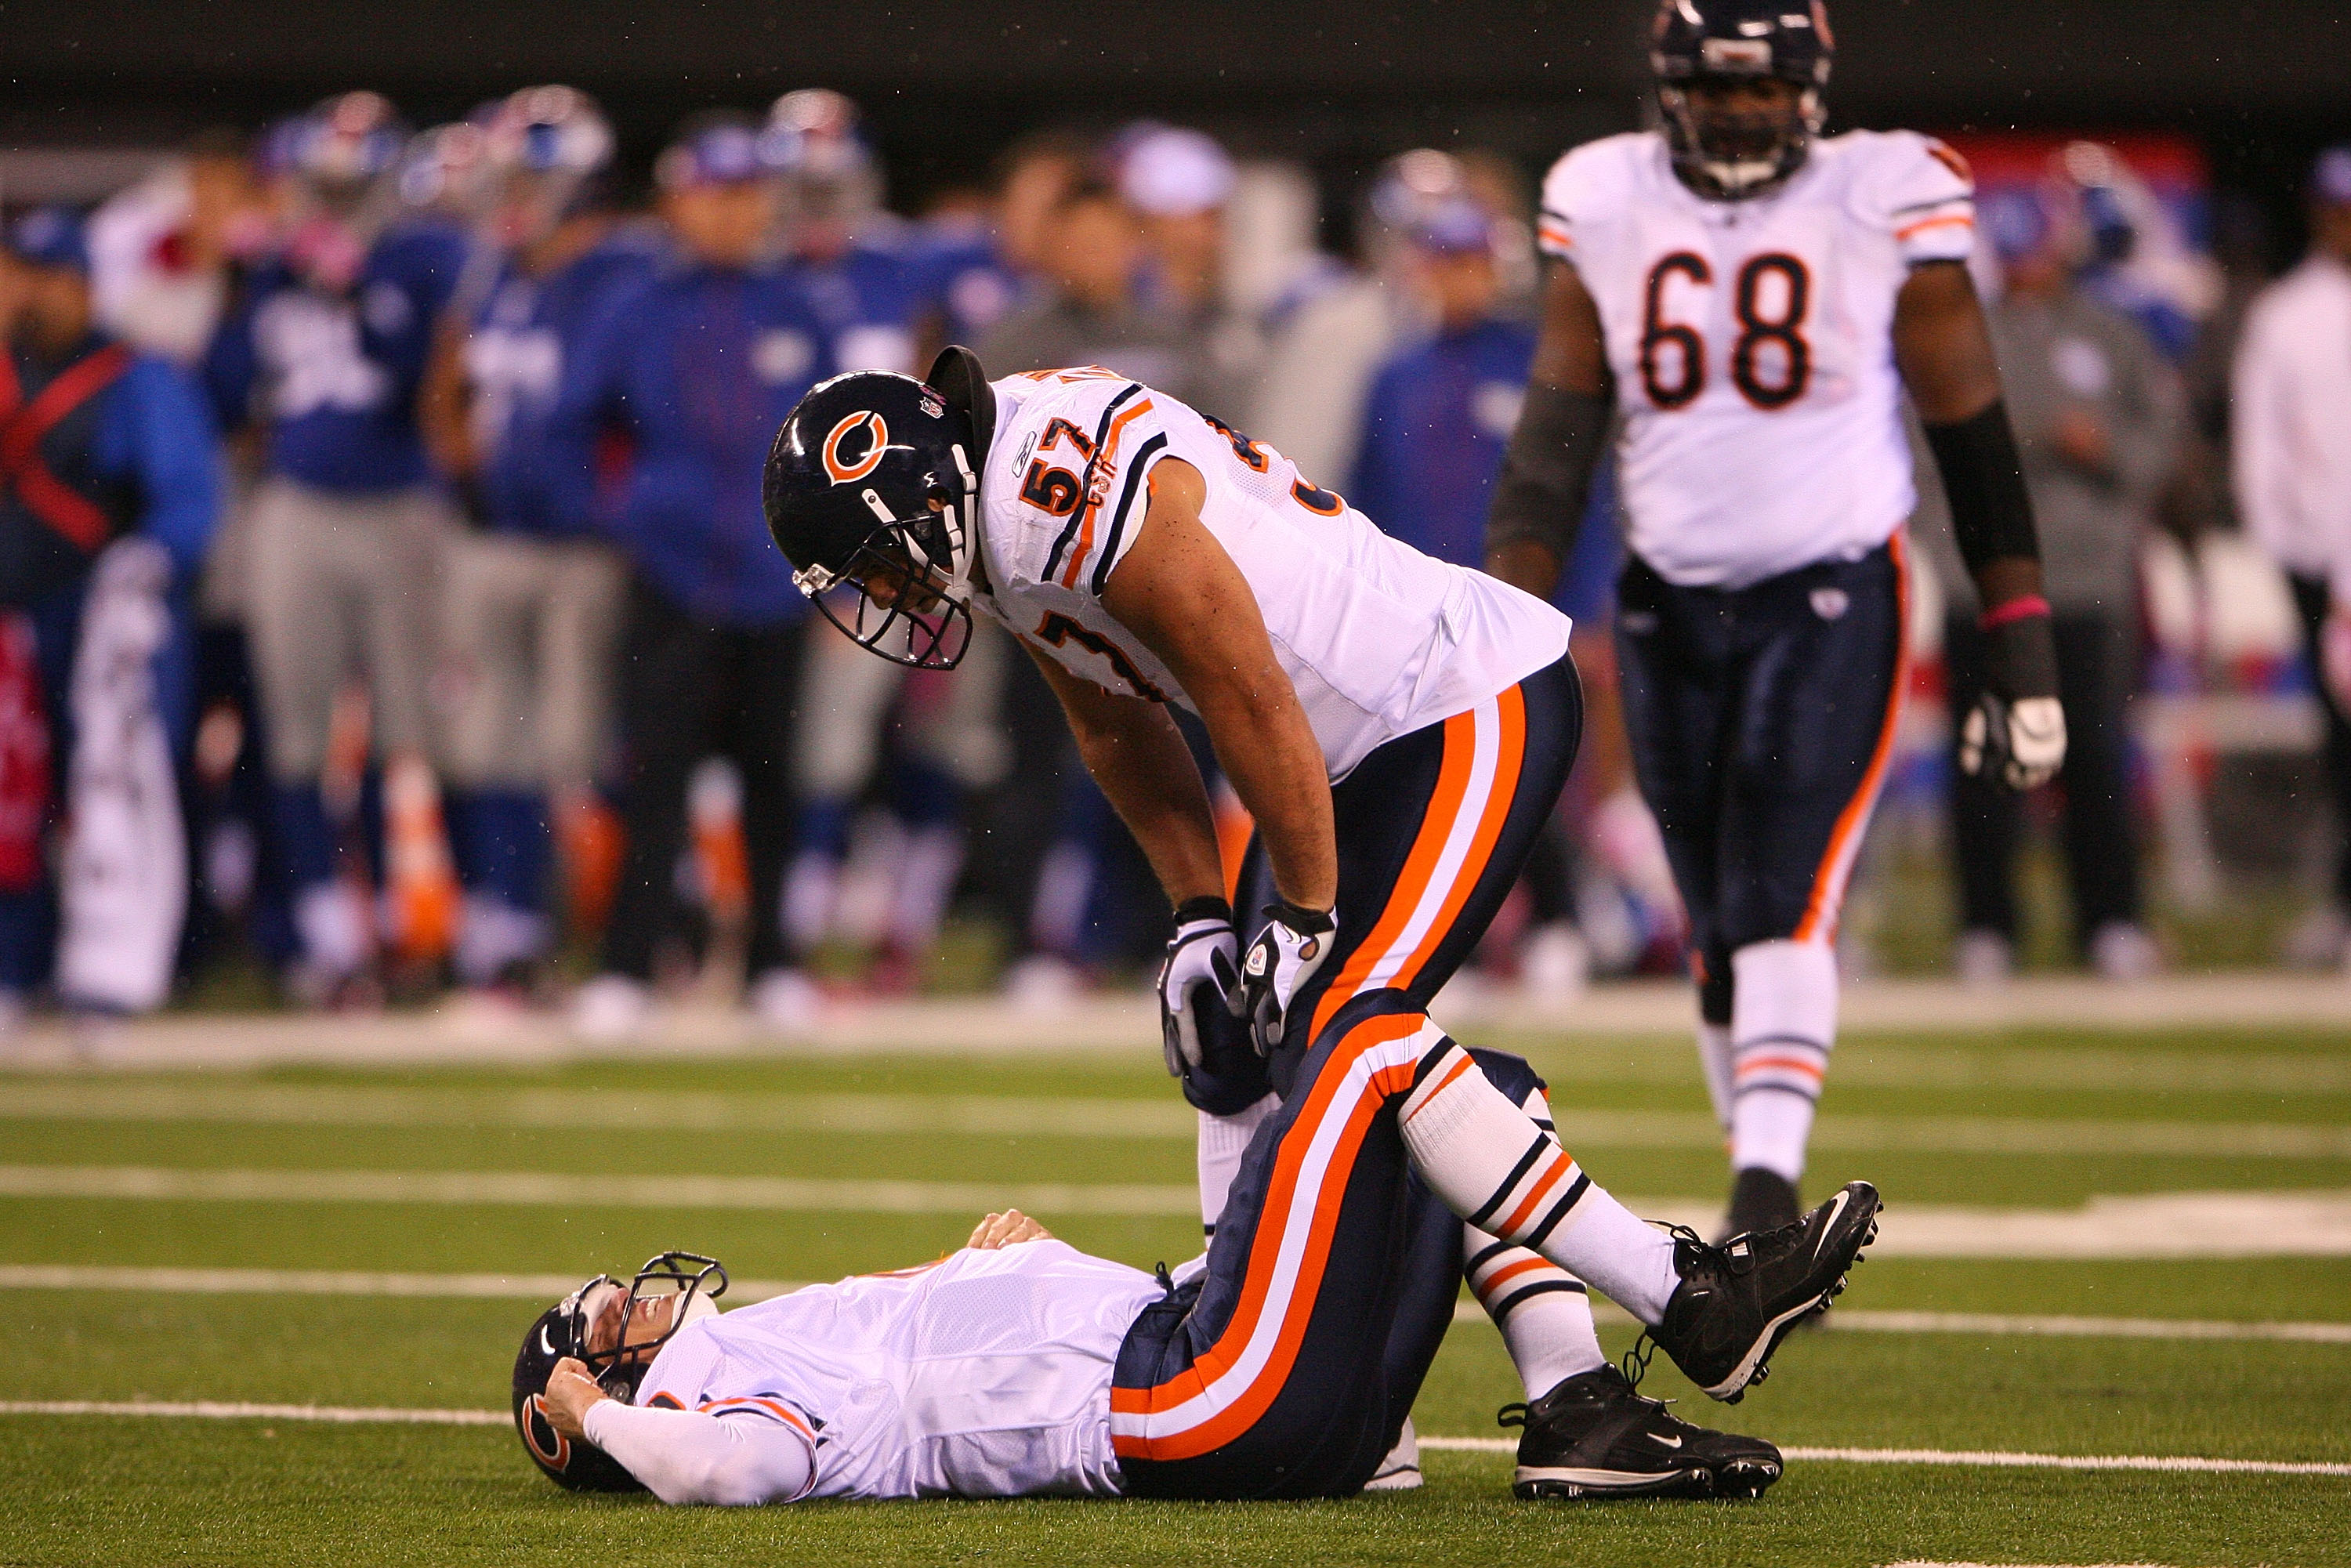 EAST RUTHERFORD, NJ - OCTOBER 03:  Olin Kreutz #57 looks at Todd Collins #10 of the Chicago Bears as he lays on the field after getting injured against the New York Giants at New Meadowlands Stadium on October 3, 2010 in East Rutherford, New Jersey.  (Pho